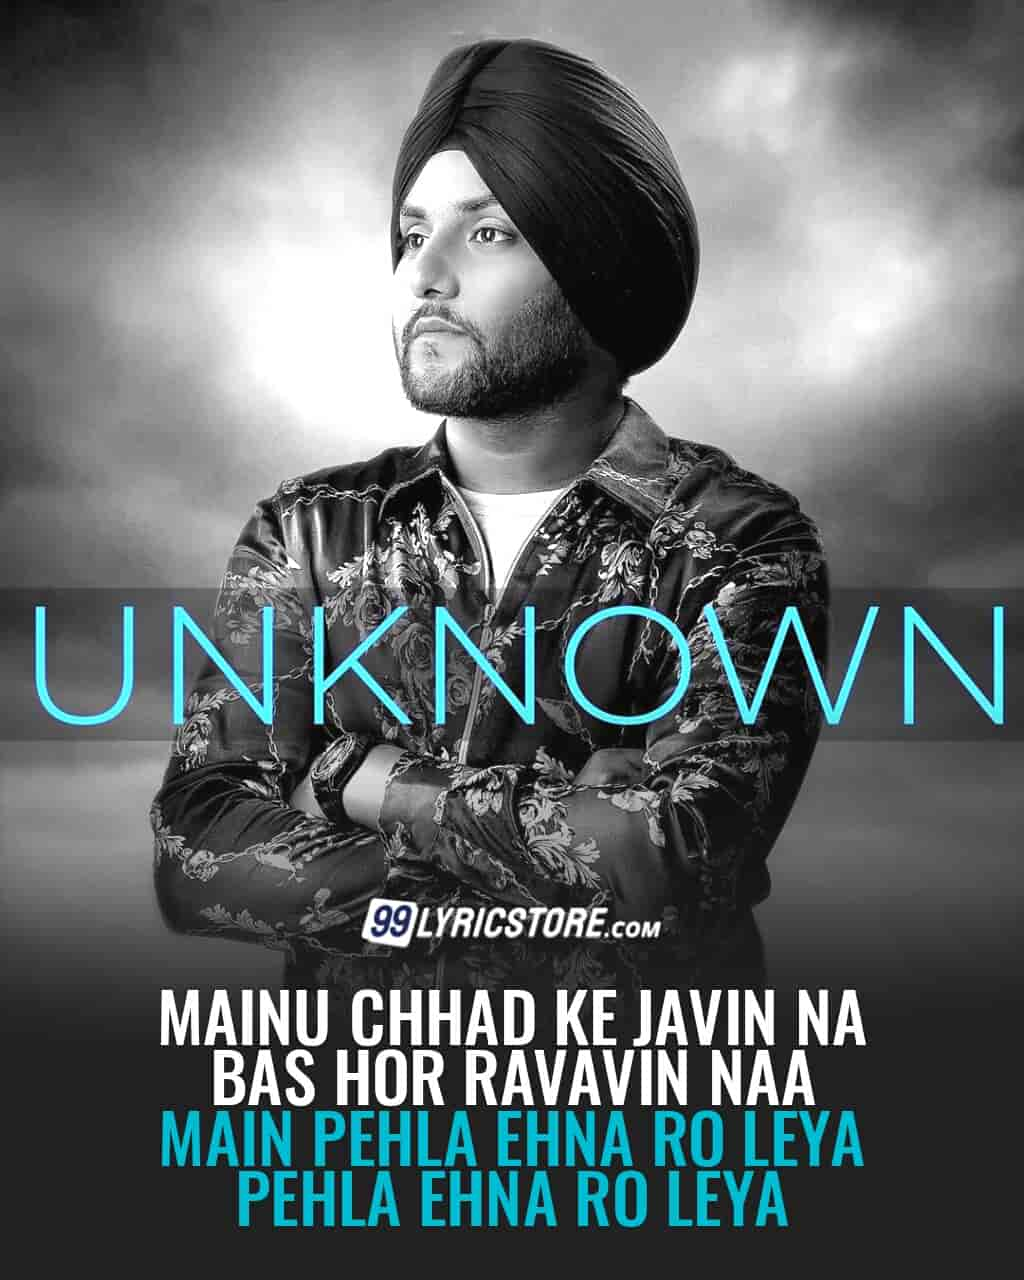 Unknown punjabi song lyrics sung by Mehtab Virk